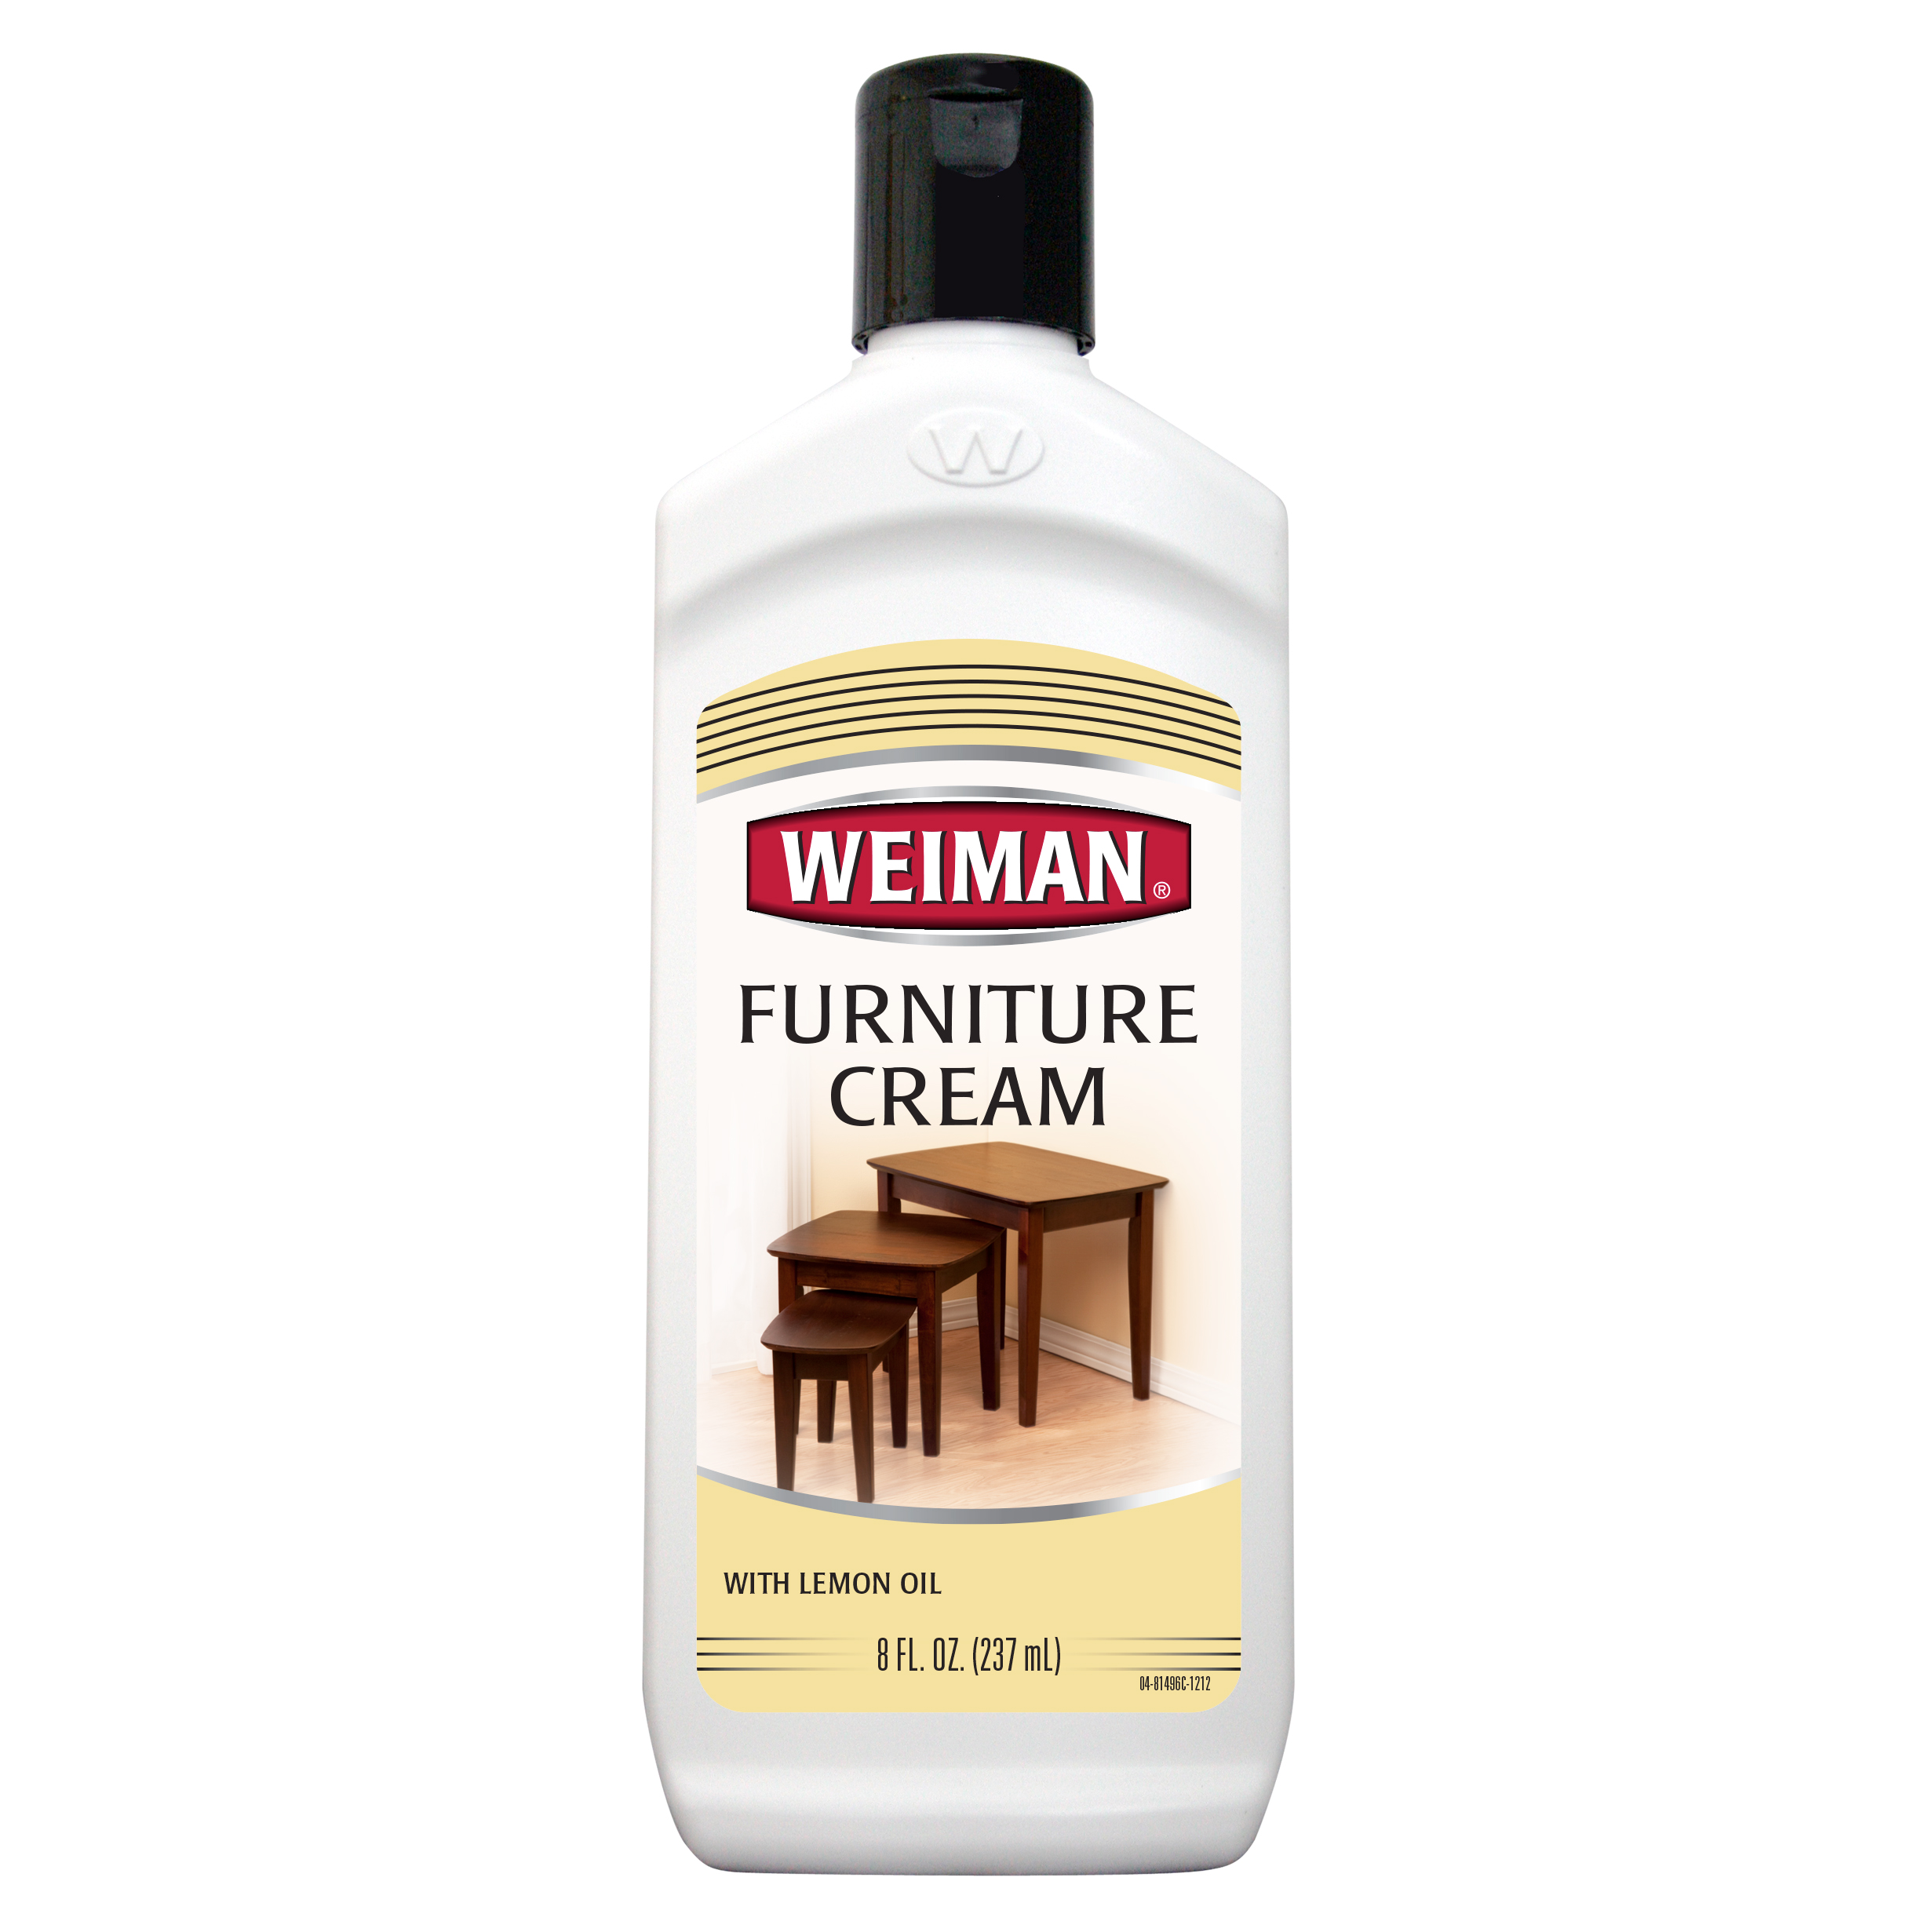 Weiman Fruniture Cream With Lemon Oil, 8.0 FL OZ